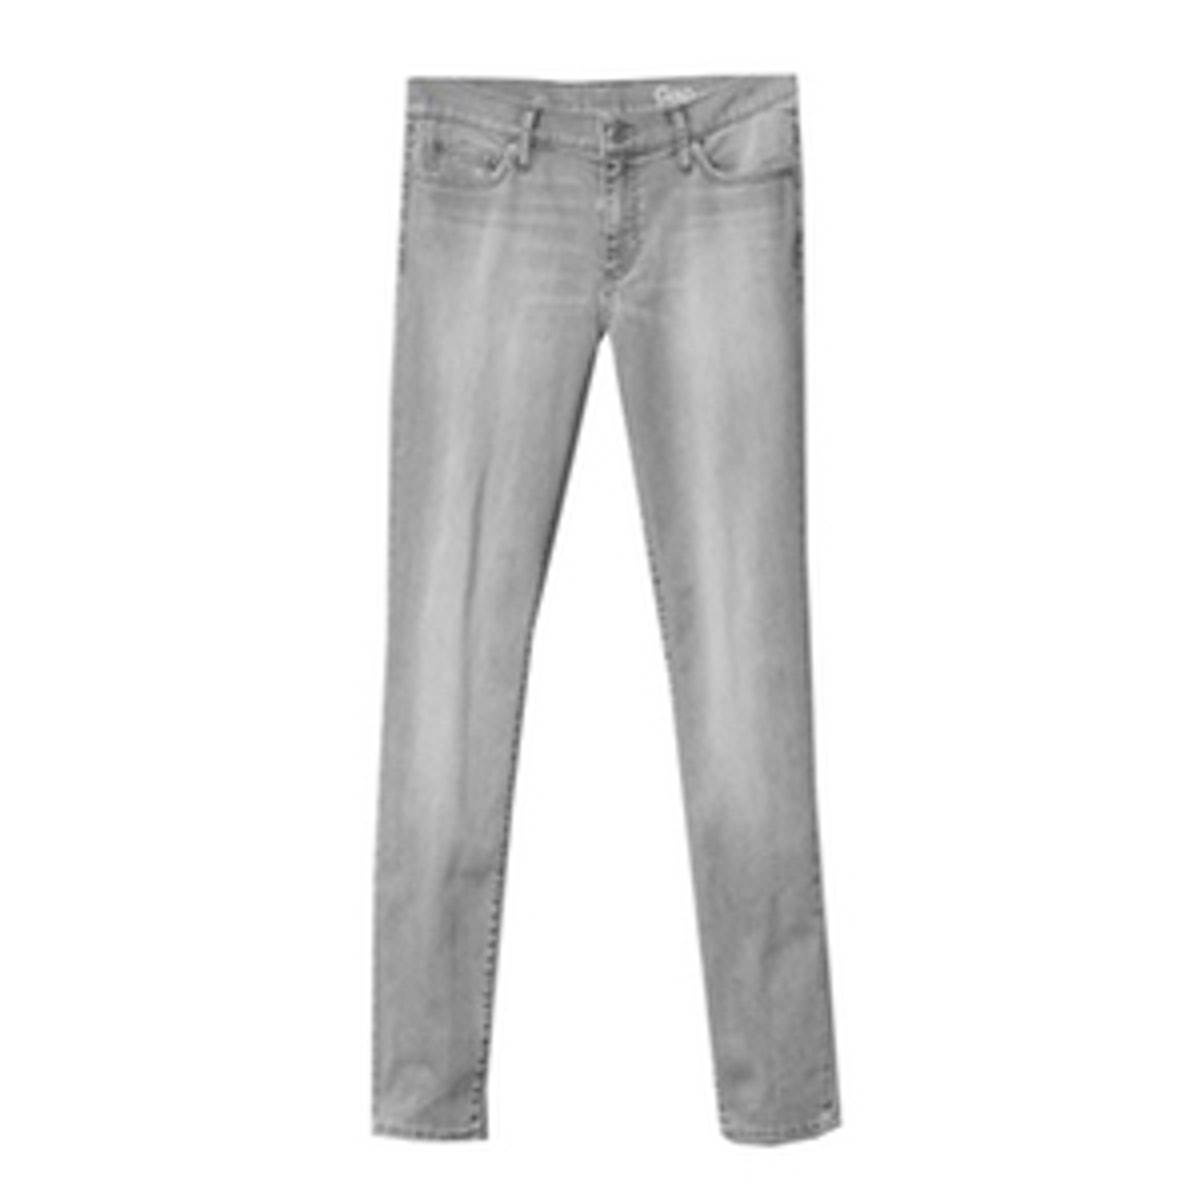 1969 Authentic True Skinny Jeans